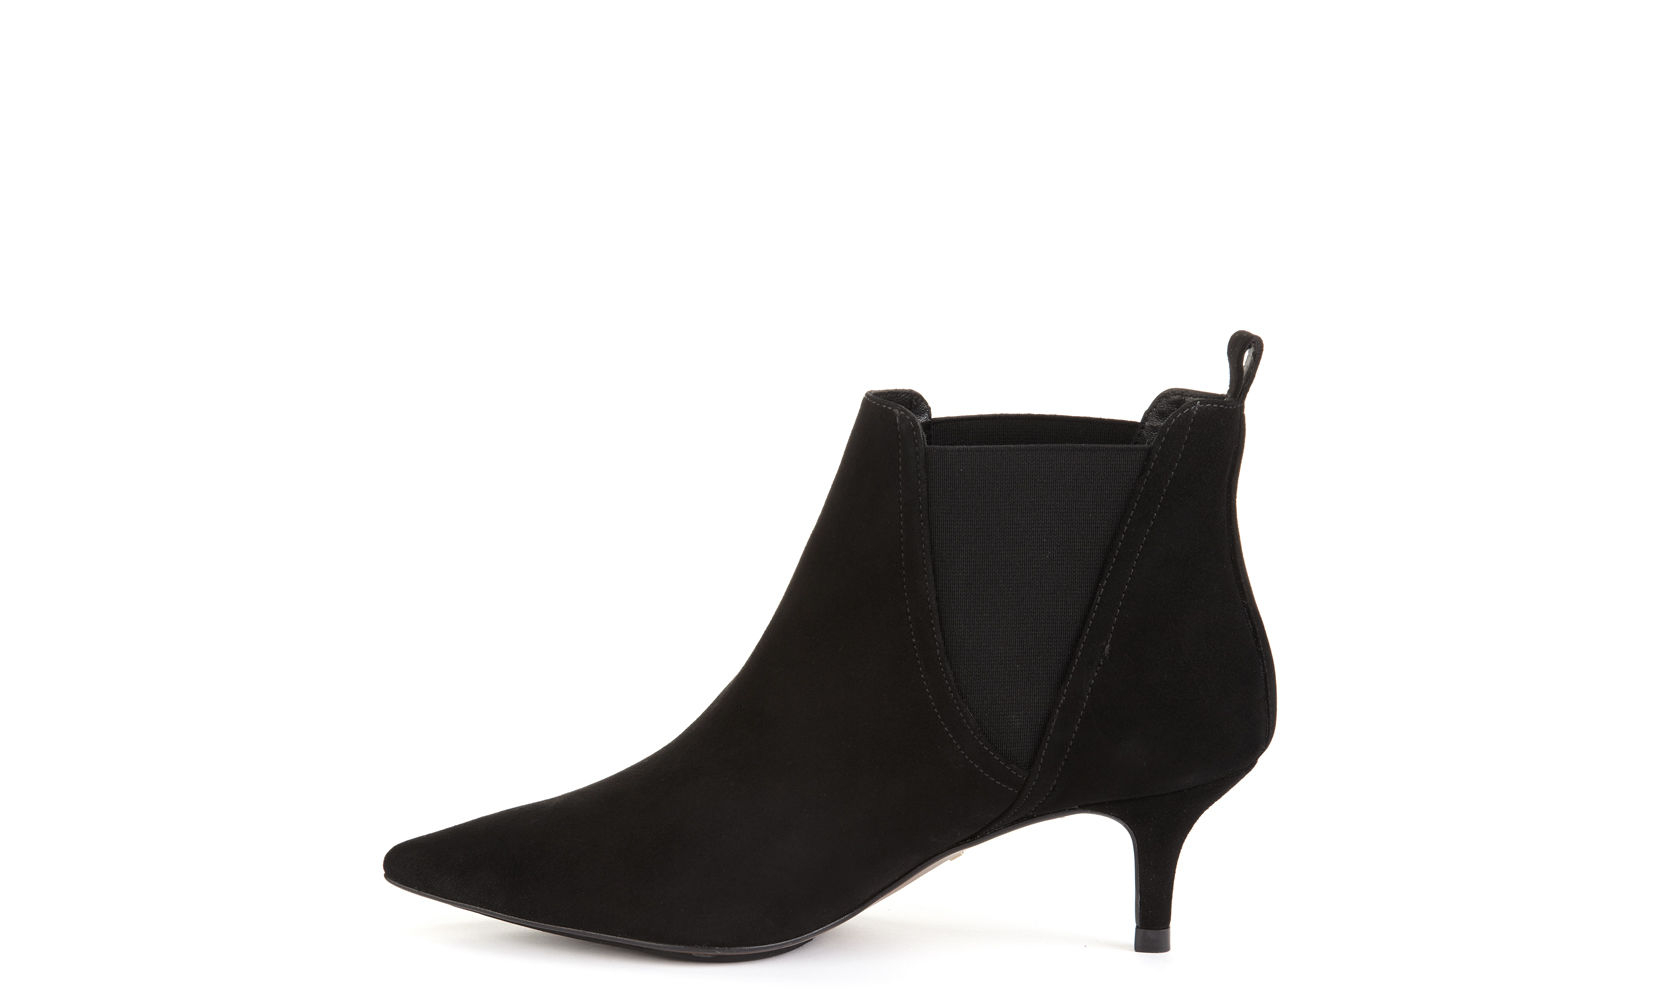 Black Suede Boots Kitten Heel - Is Heel